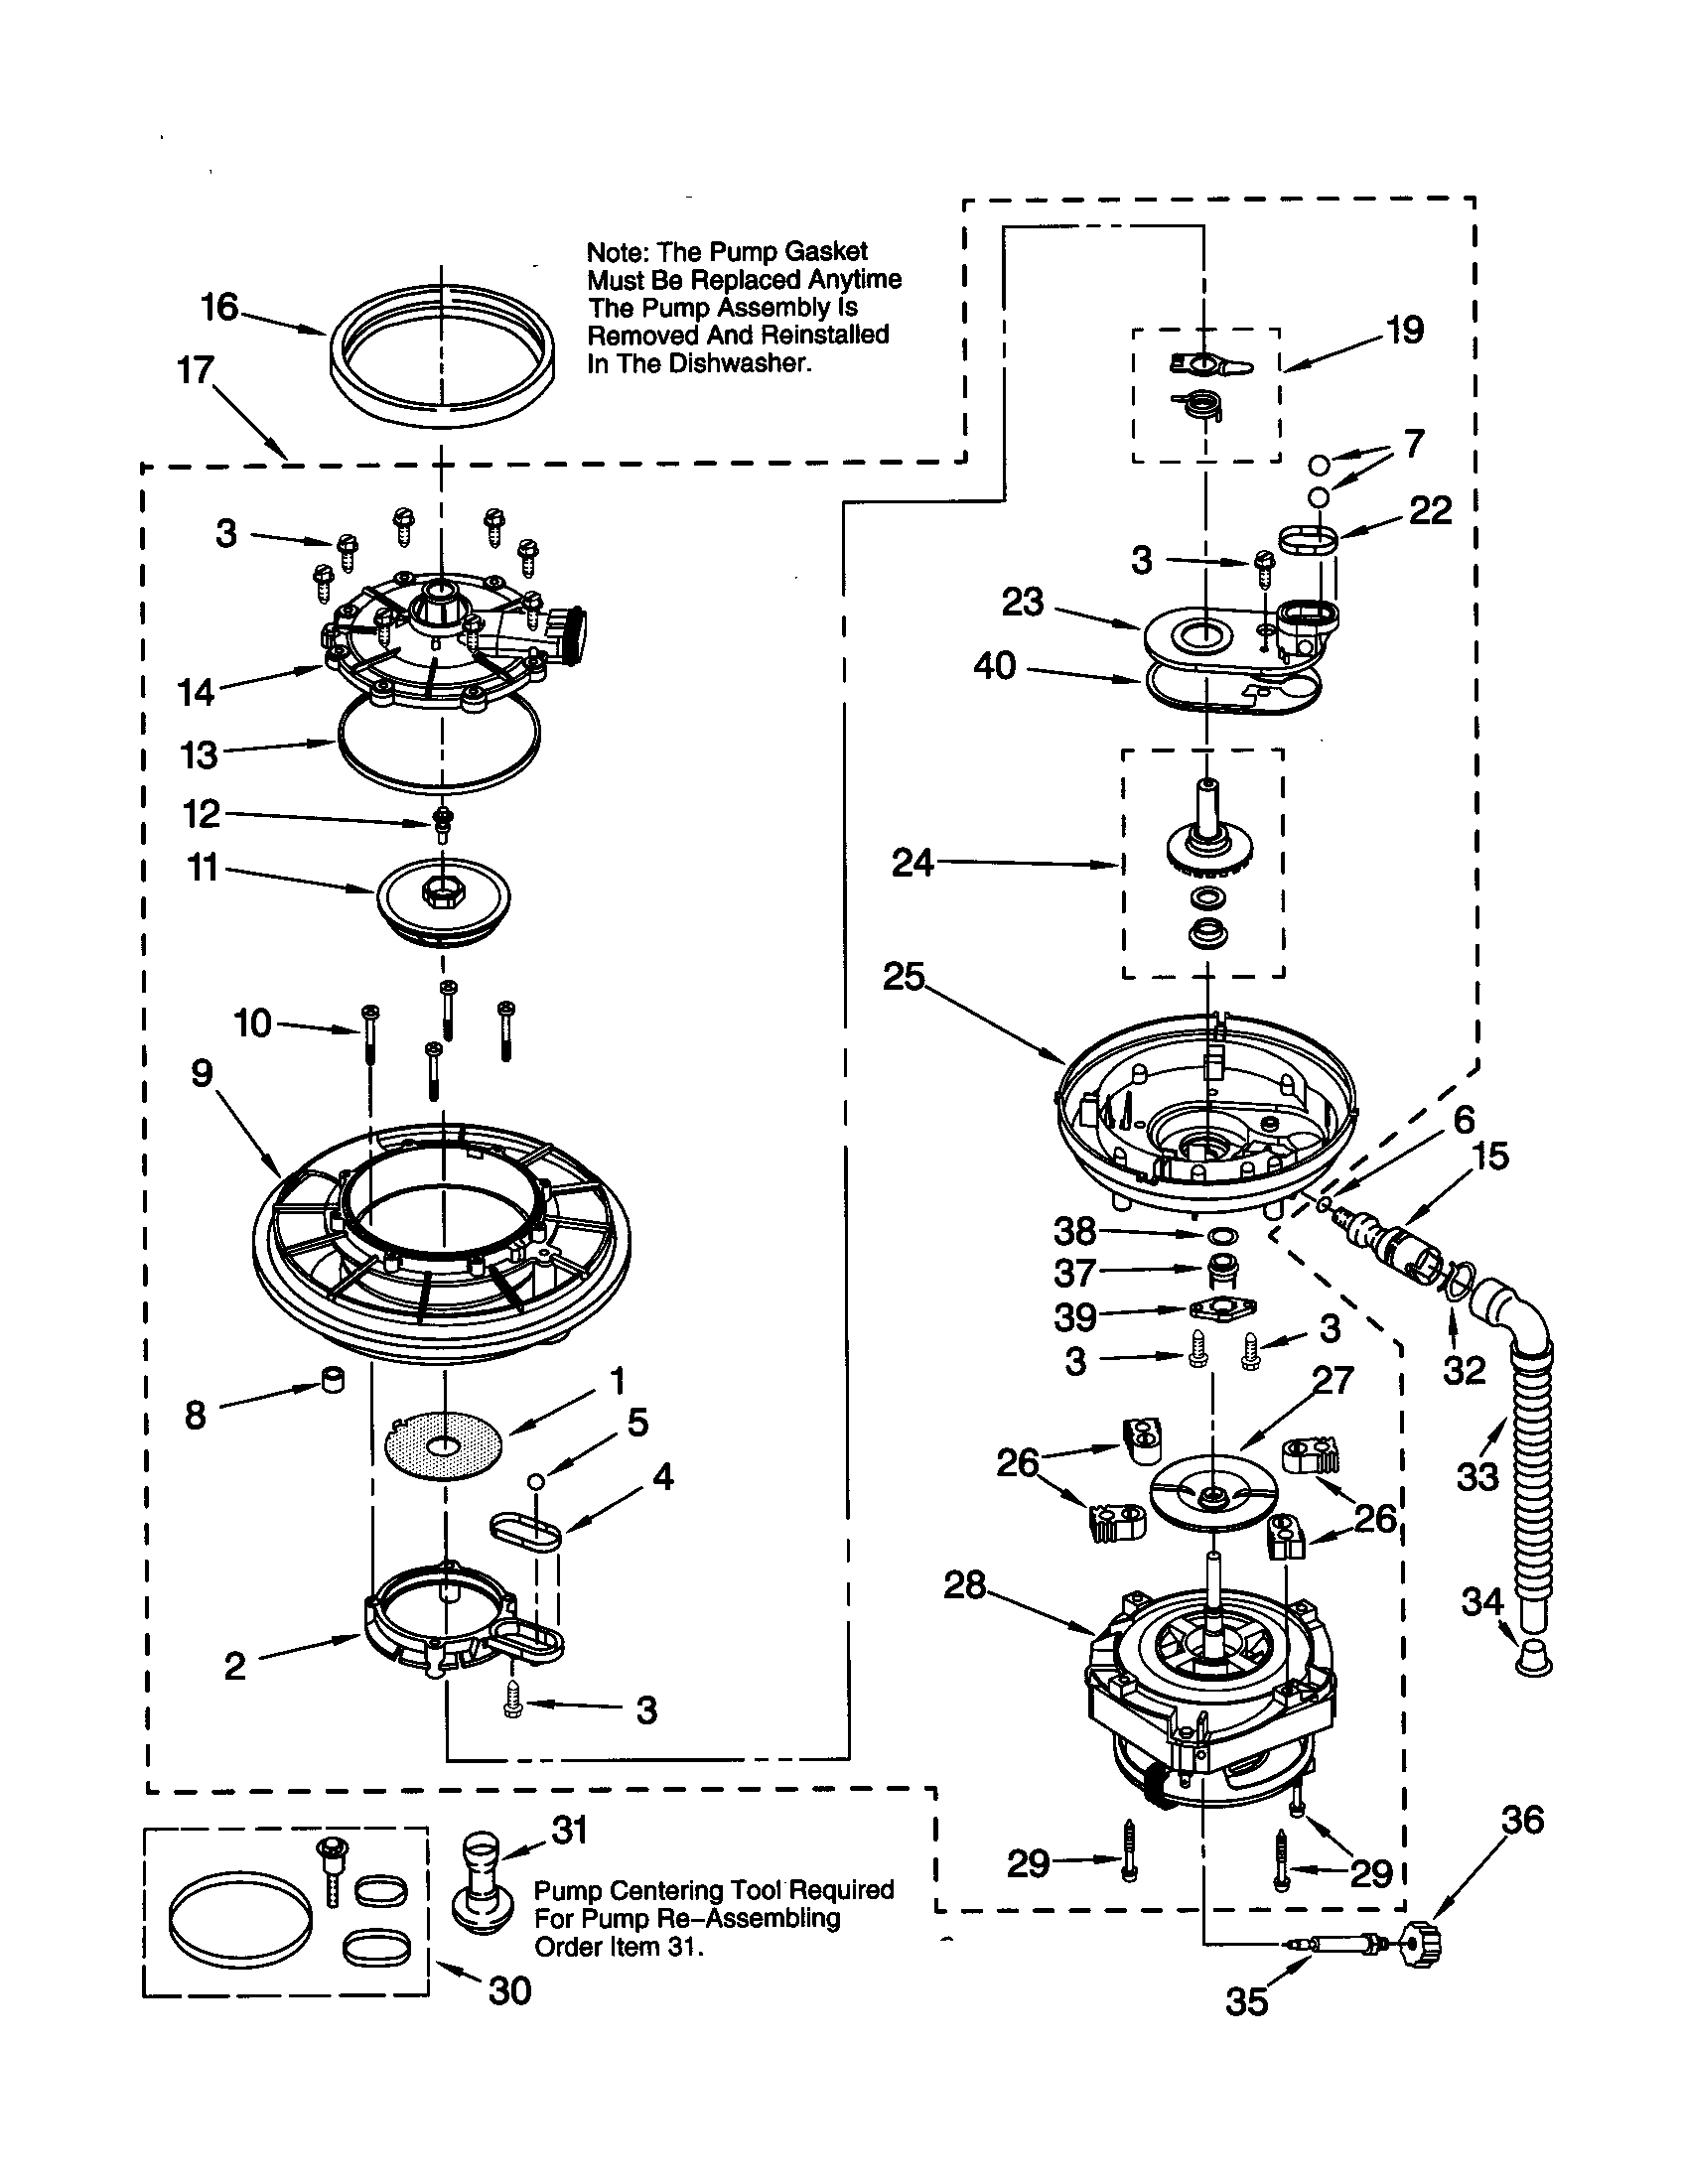 PUMP AND MOTOR Diagram & Parts List for Model 66515834000